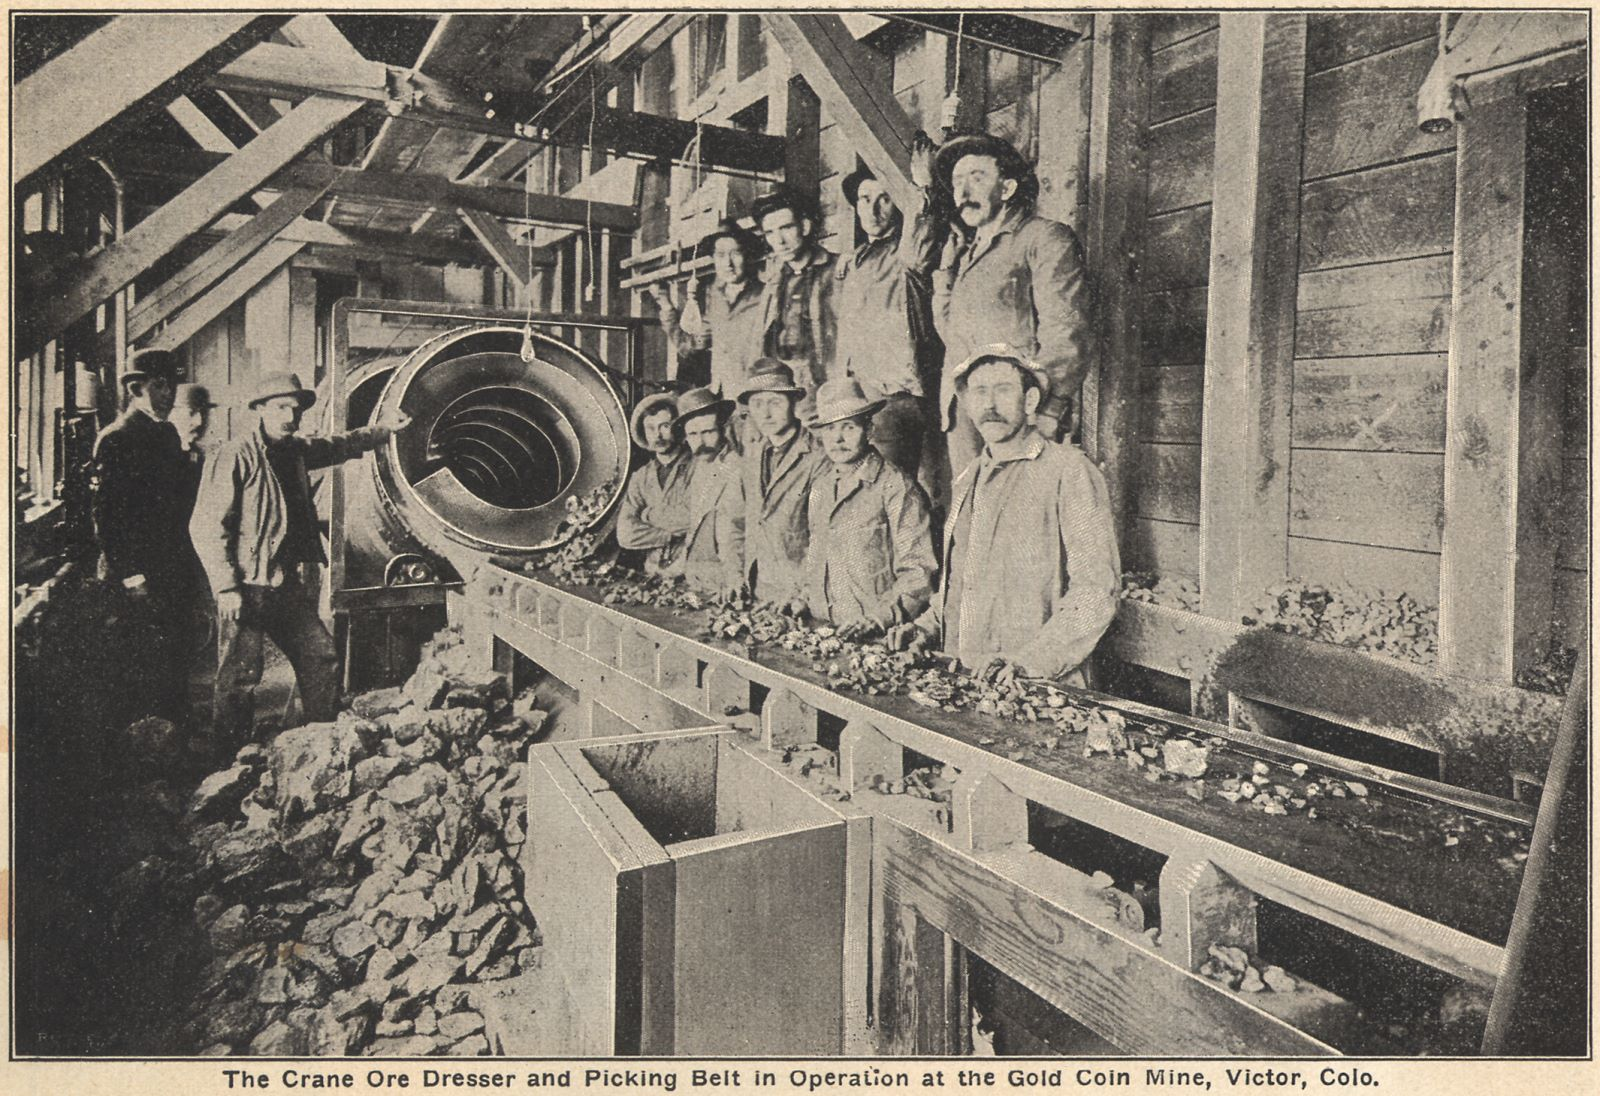 "This image is used as an advertisement for the Crane Ore Dresser in all ""Seeing Cripple Creek"" issues I've seen, and is said to be in the ore-house of the Gold Coin mine in Victor, Colorado. No idea how old the image is, I just notice all the wood in use and keep wondering how that ties into the brick based ore-house of the Gold Coin mine I most often see in images."